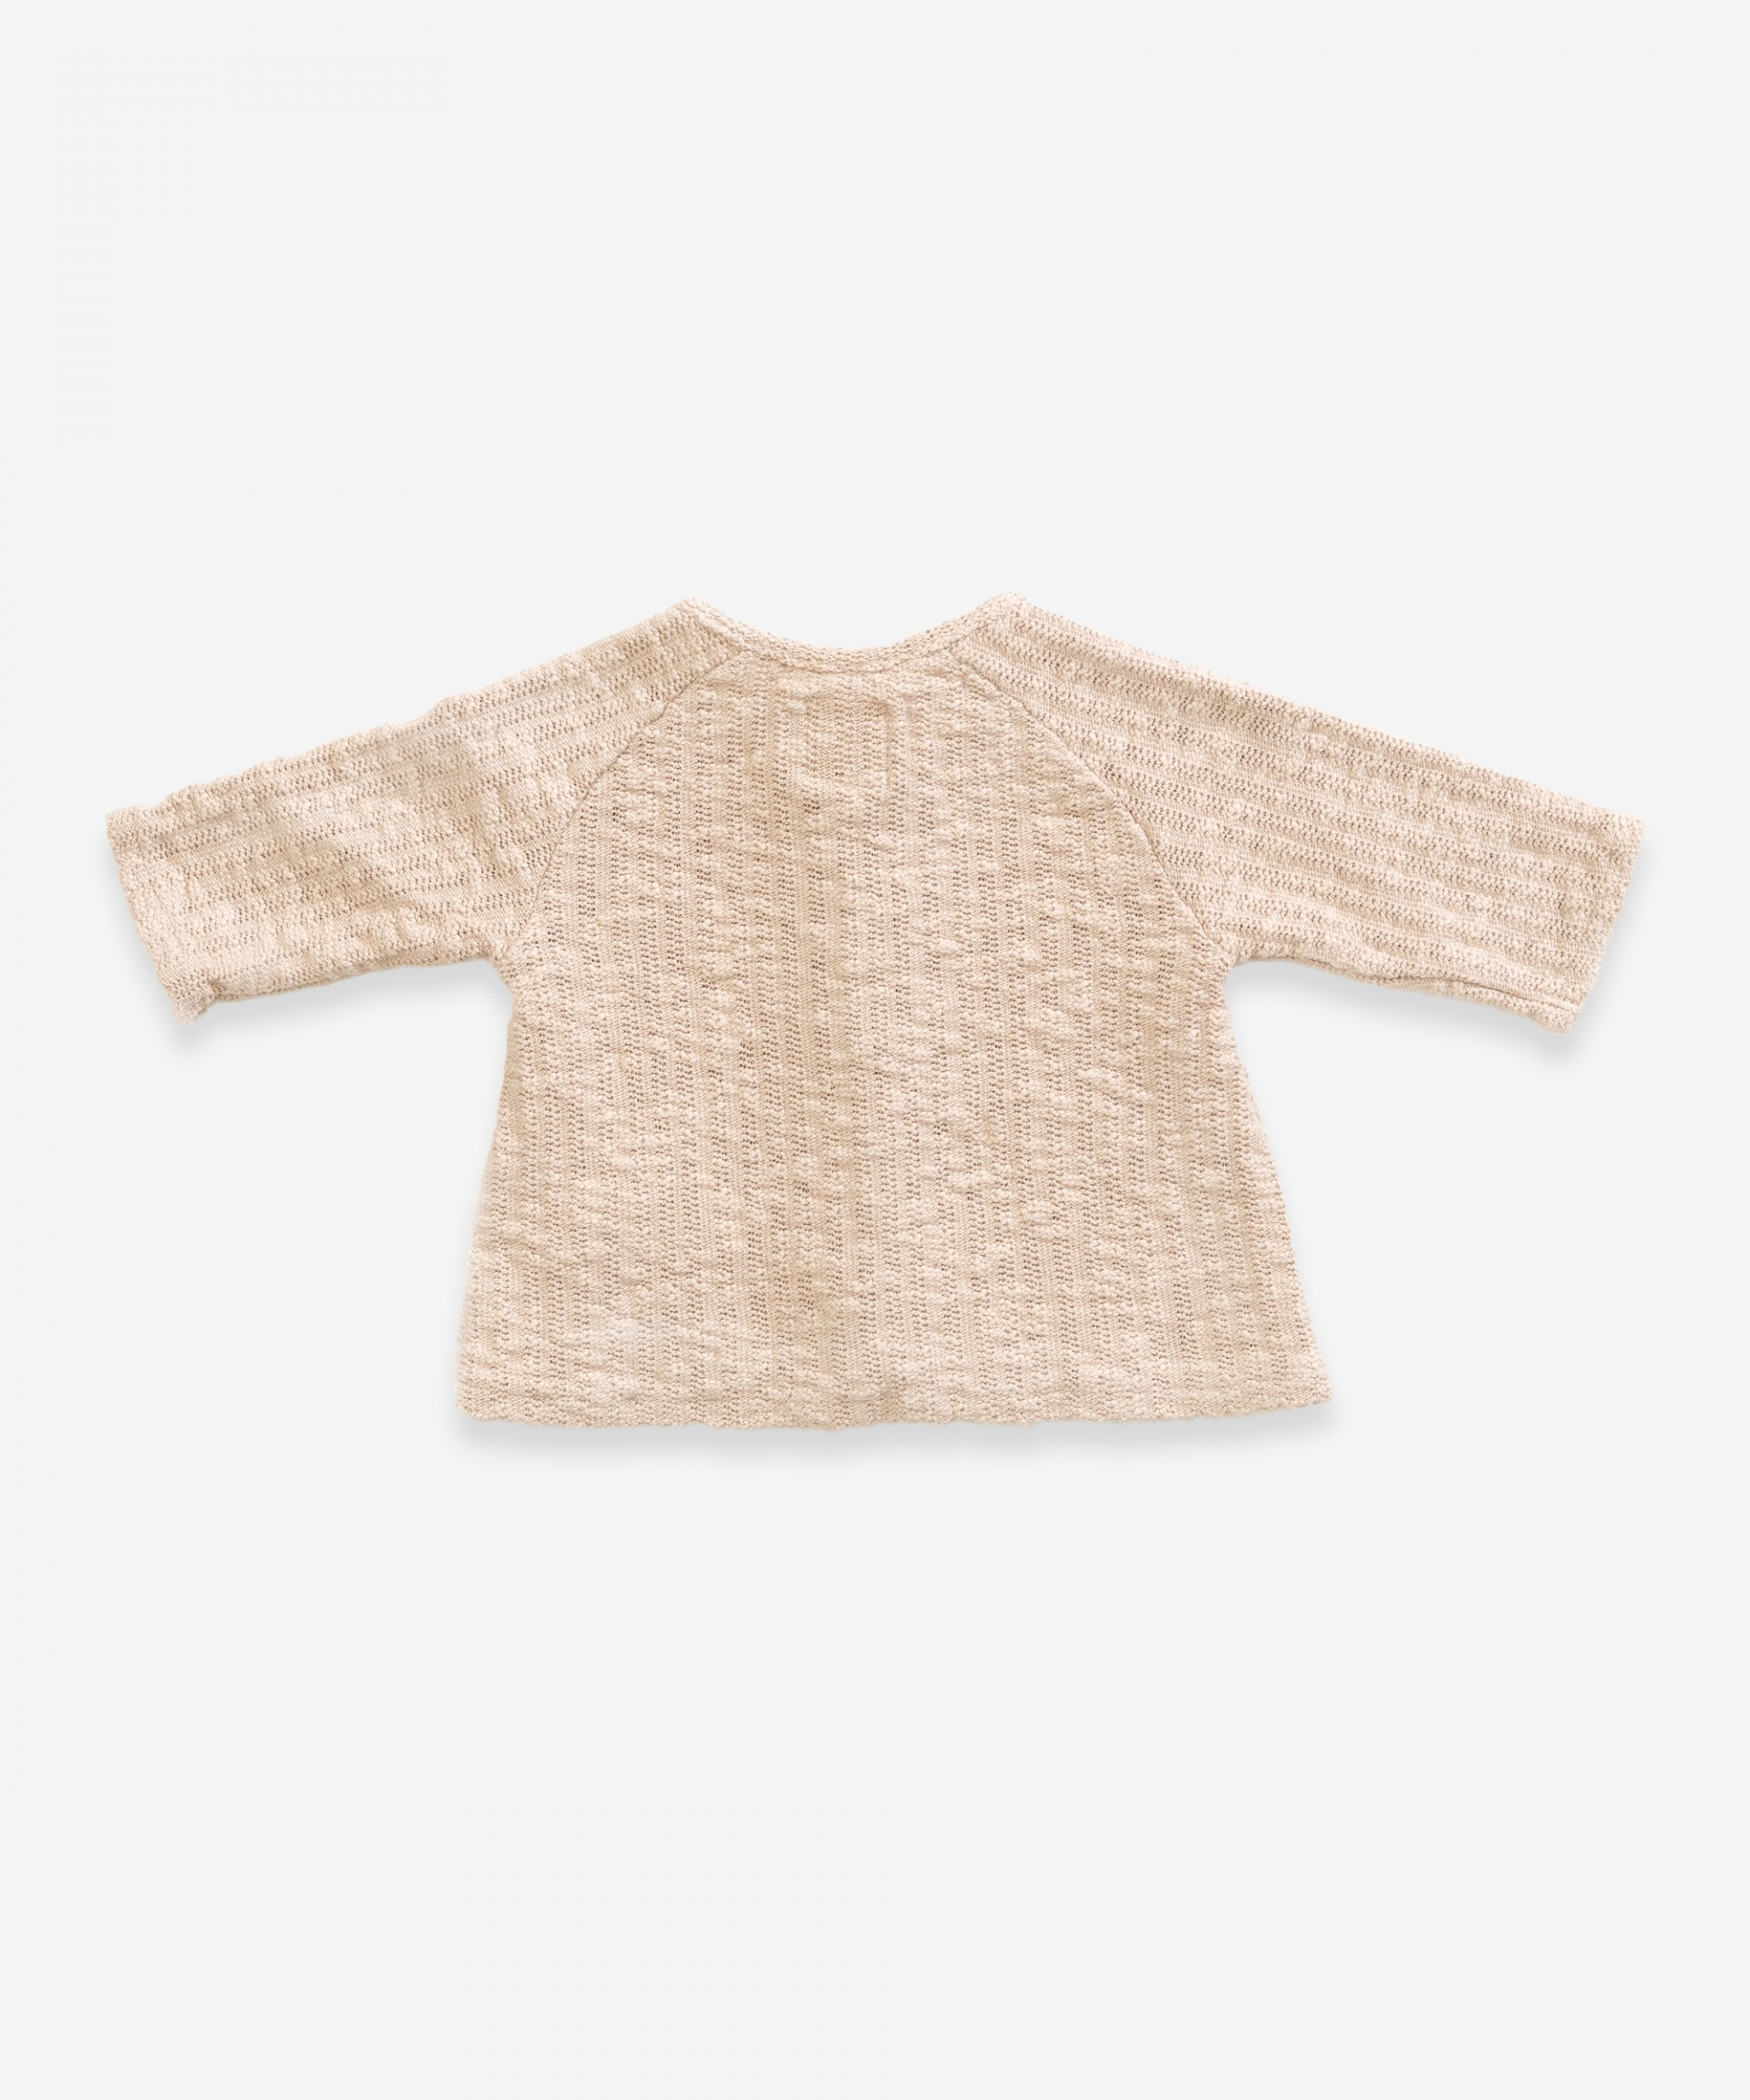 Jumper with wooden buttons | Weaving